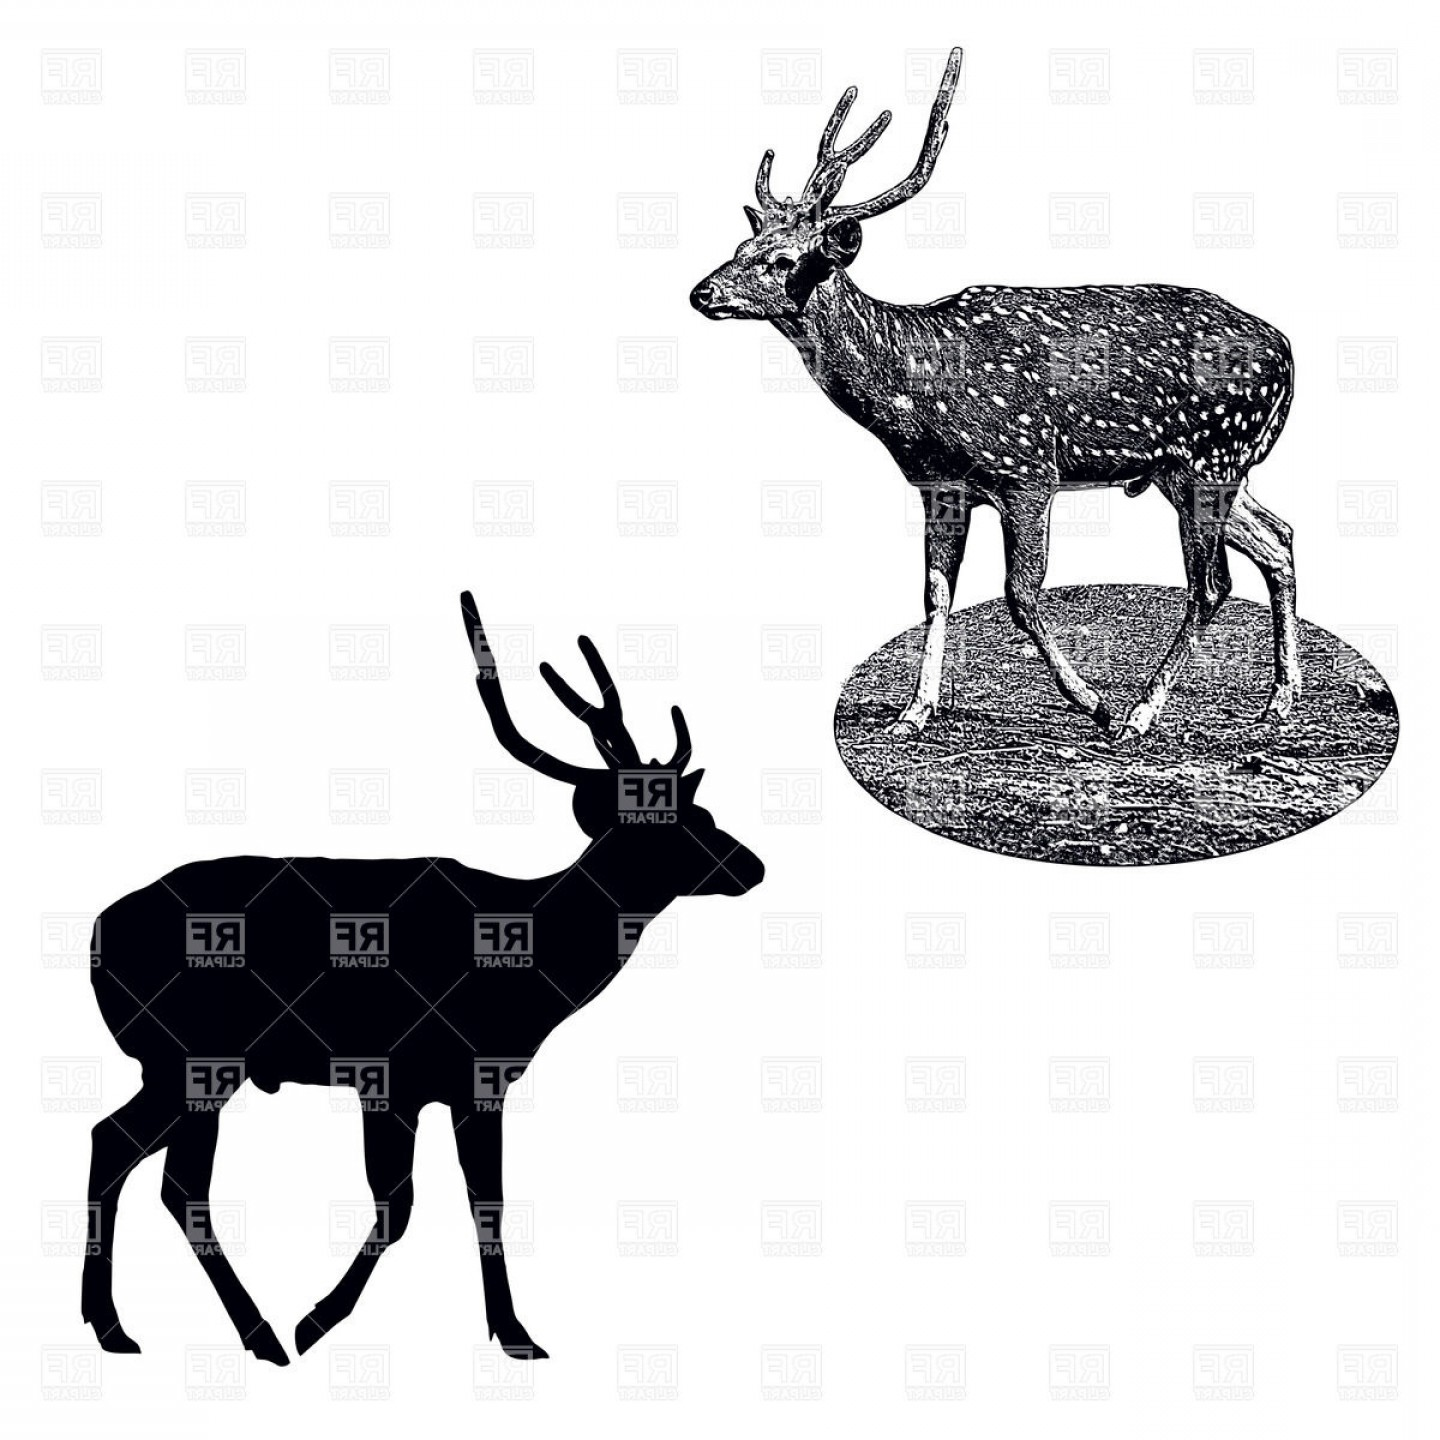 1440x1440 Silhouette And Shading Style Profile Of Male Of Spotted Deer